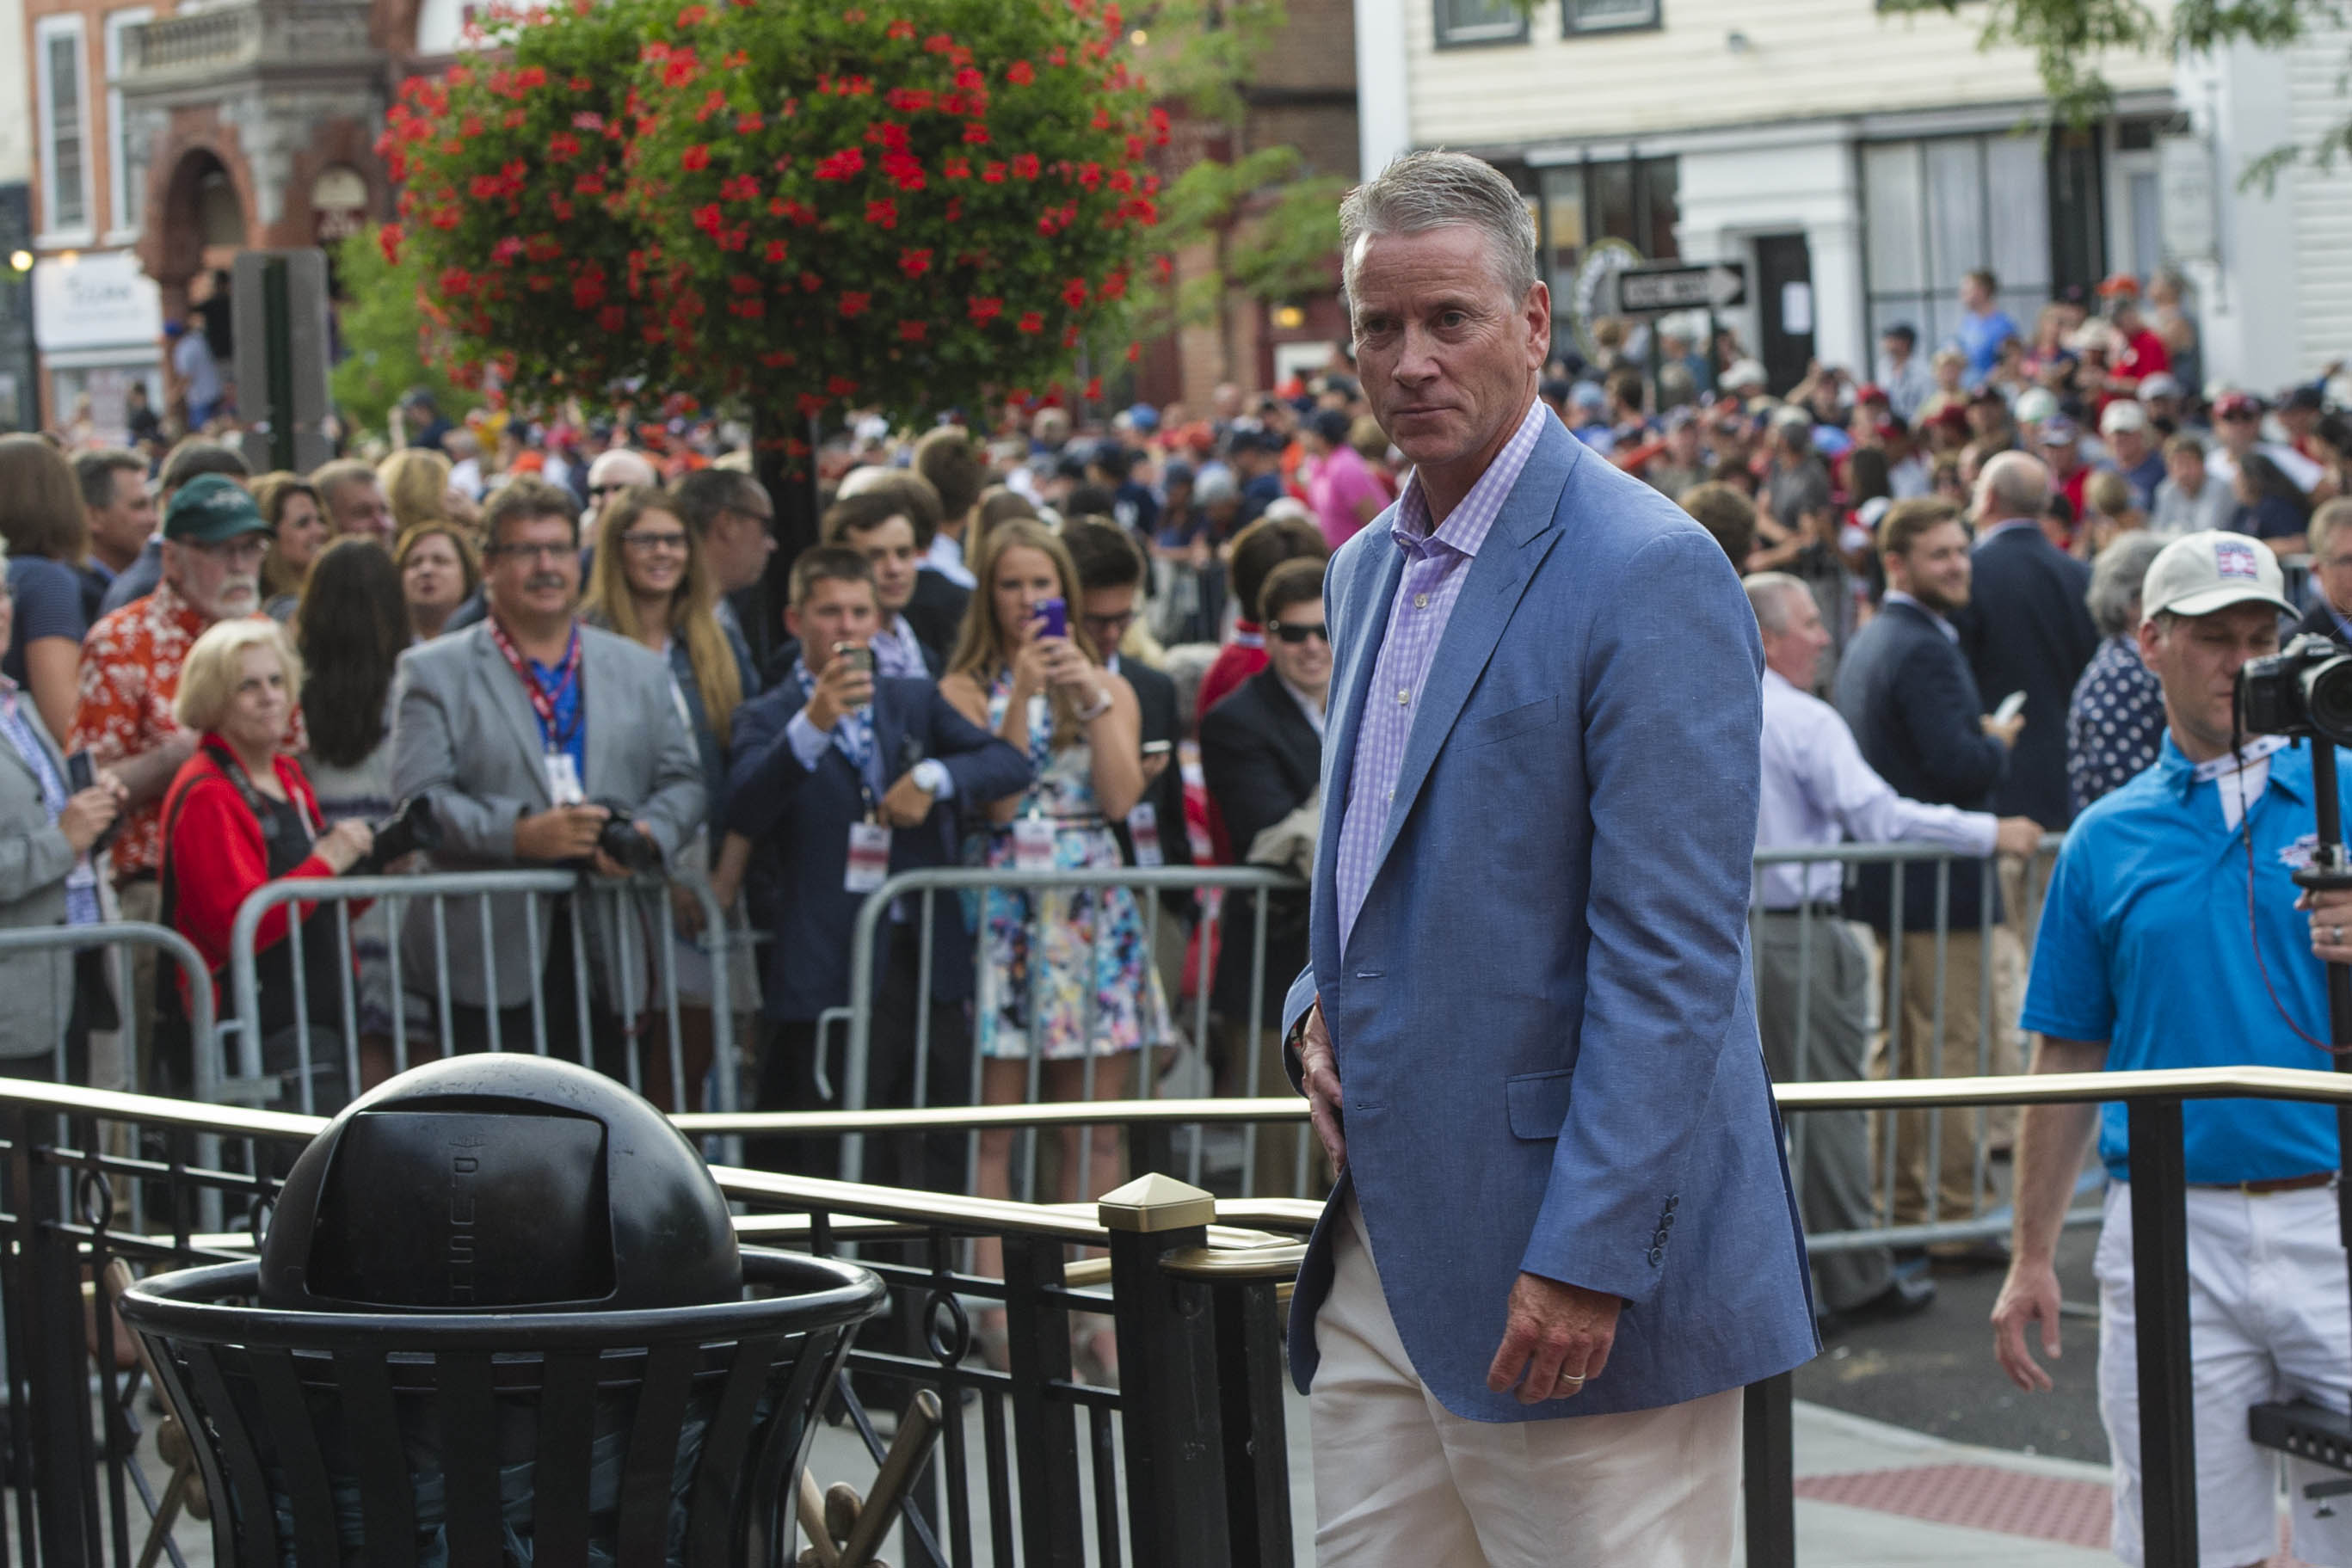 8718147-mlb-baseball-hall-of-fame-parade-of-legends